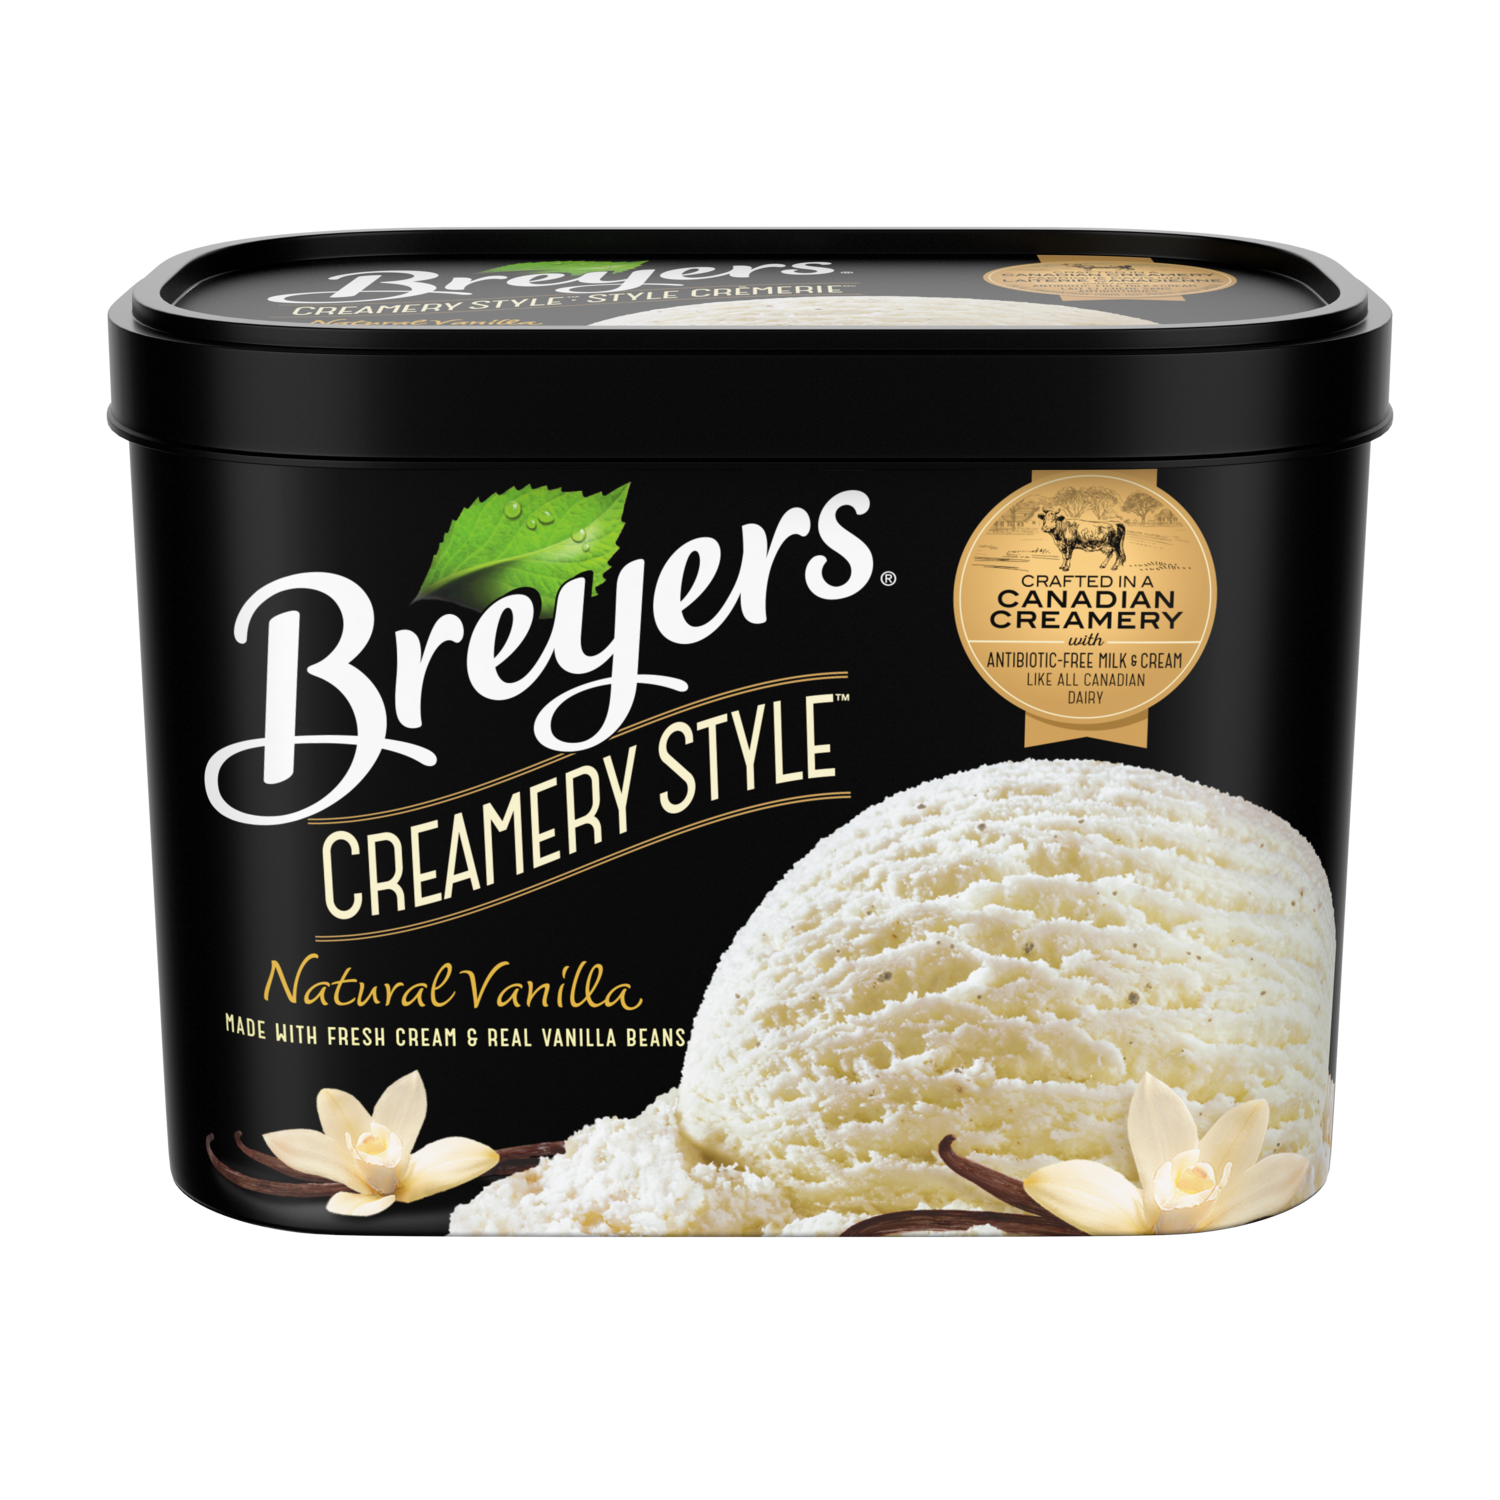 Breyers Creamery Style Natural Vanilla 1.66 L front of pack